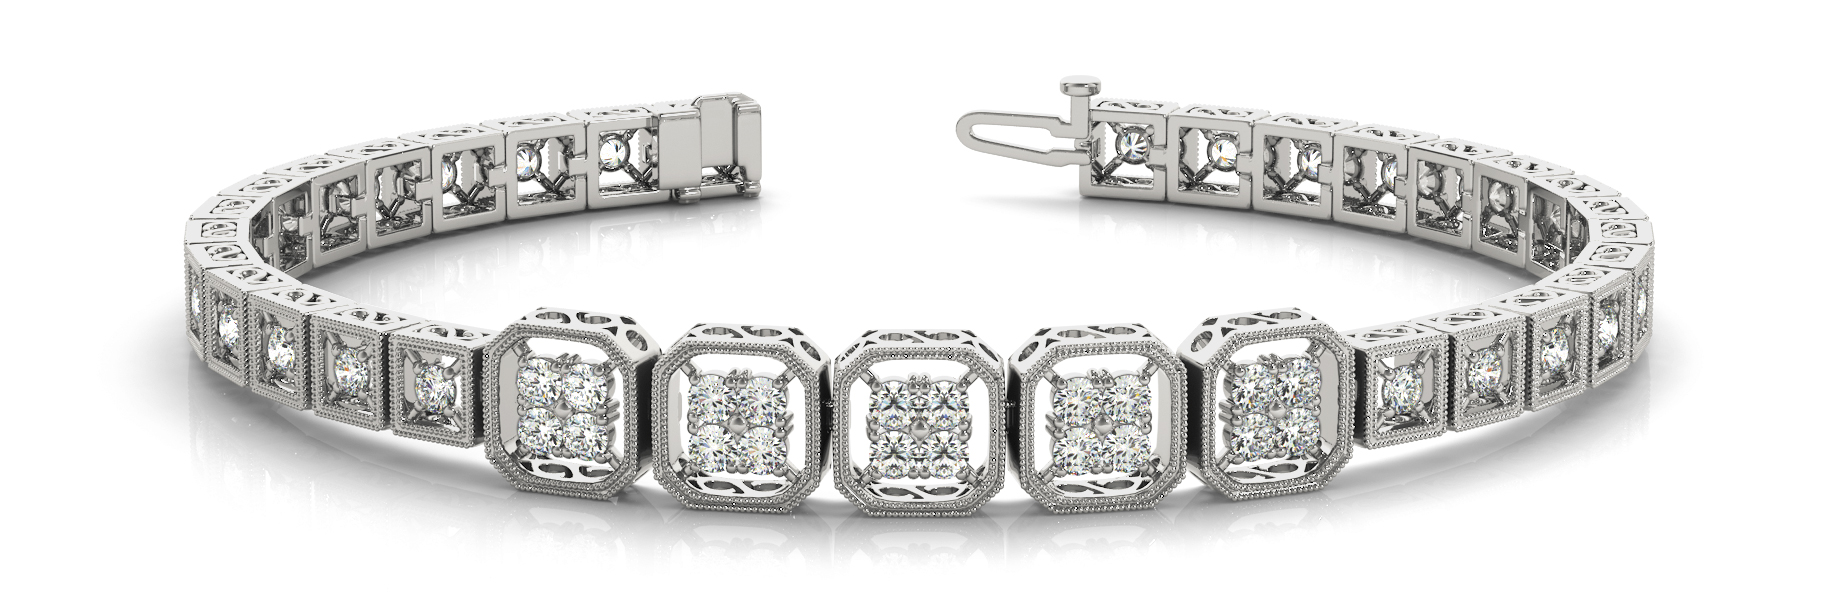 Quad Octagon Round Diamond Filigree Bracelet 1.4 ct.